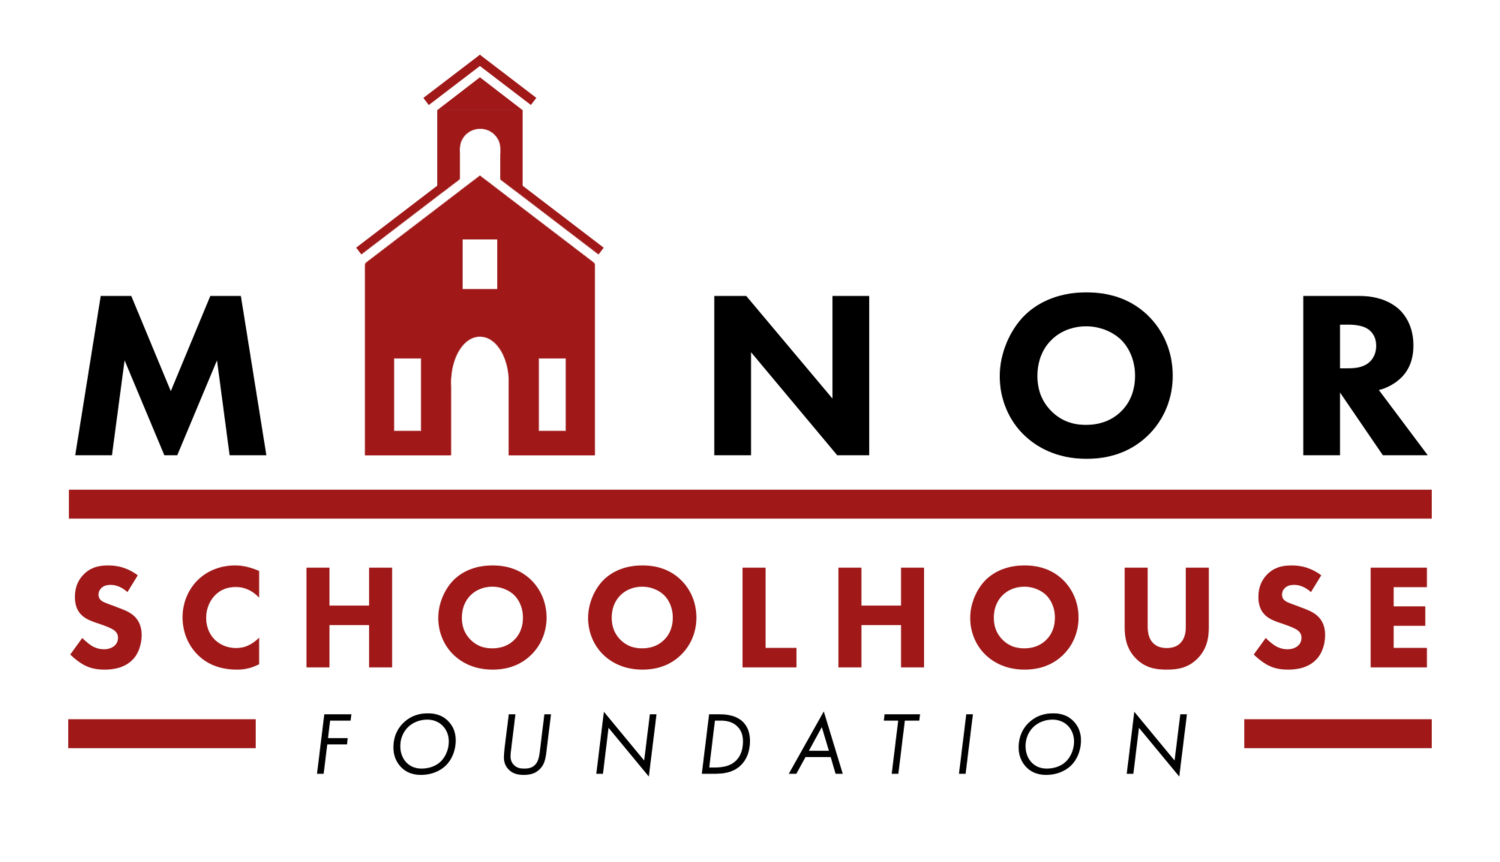 manor school house foundation logo.png